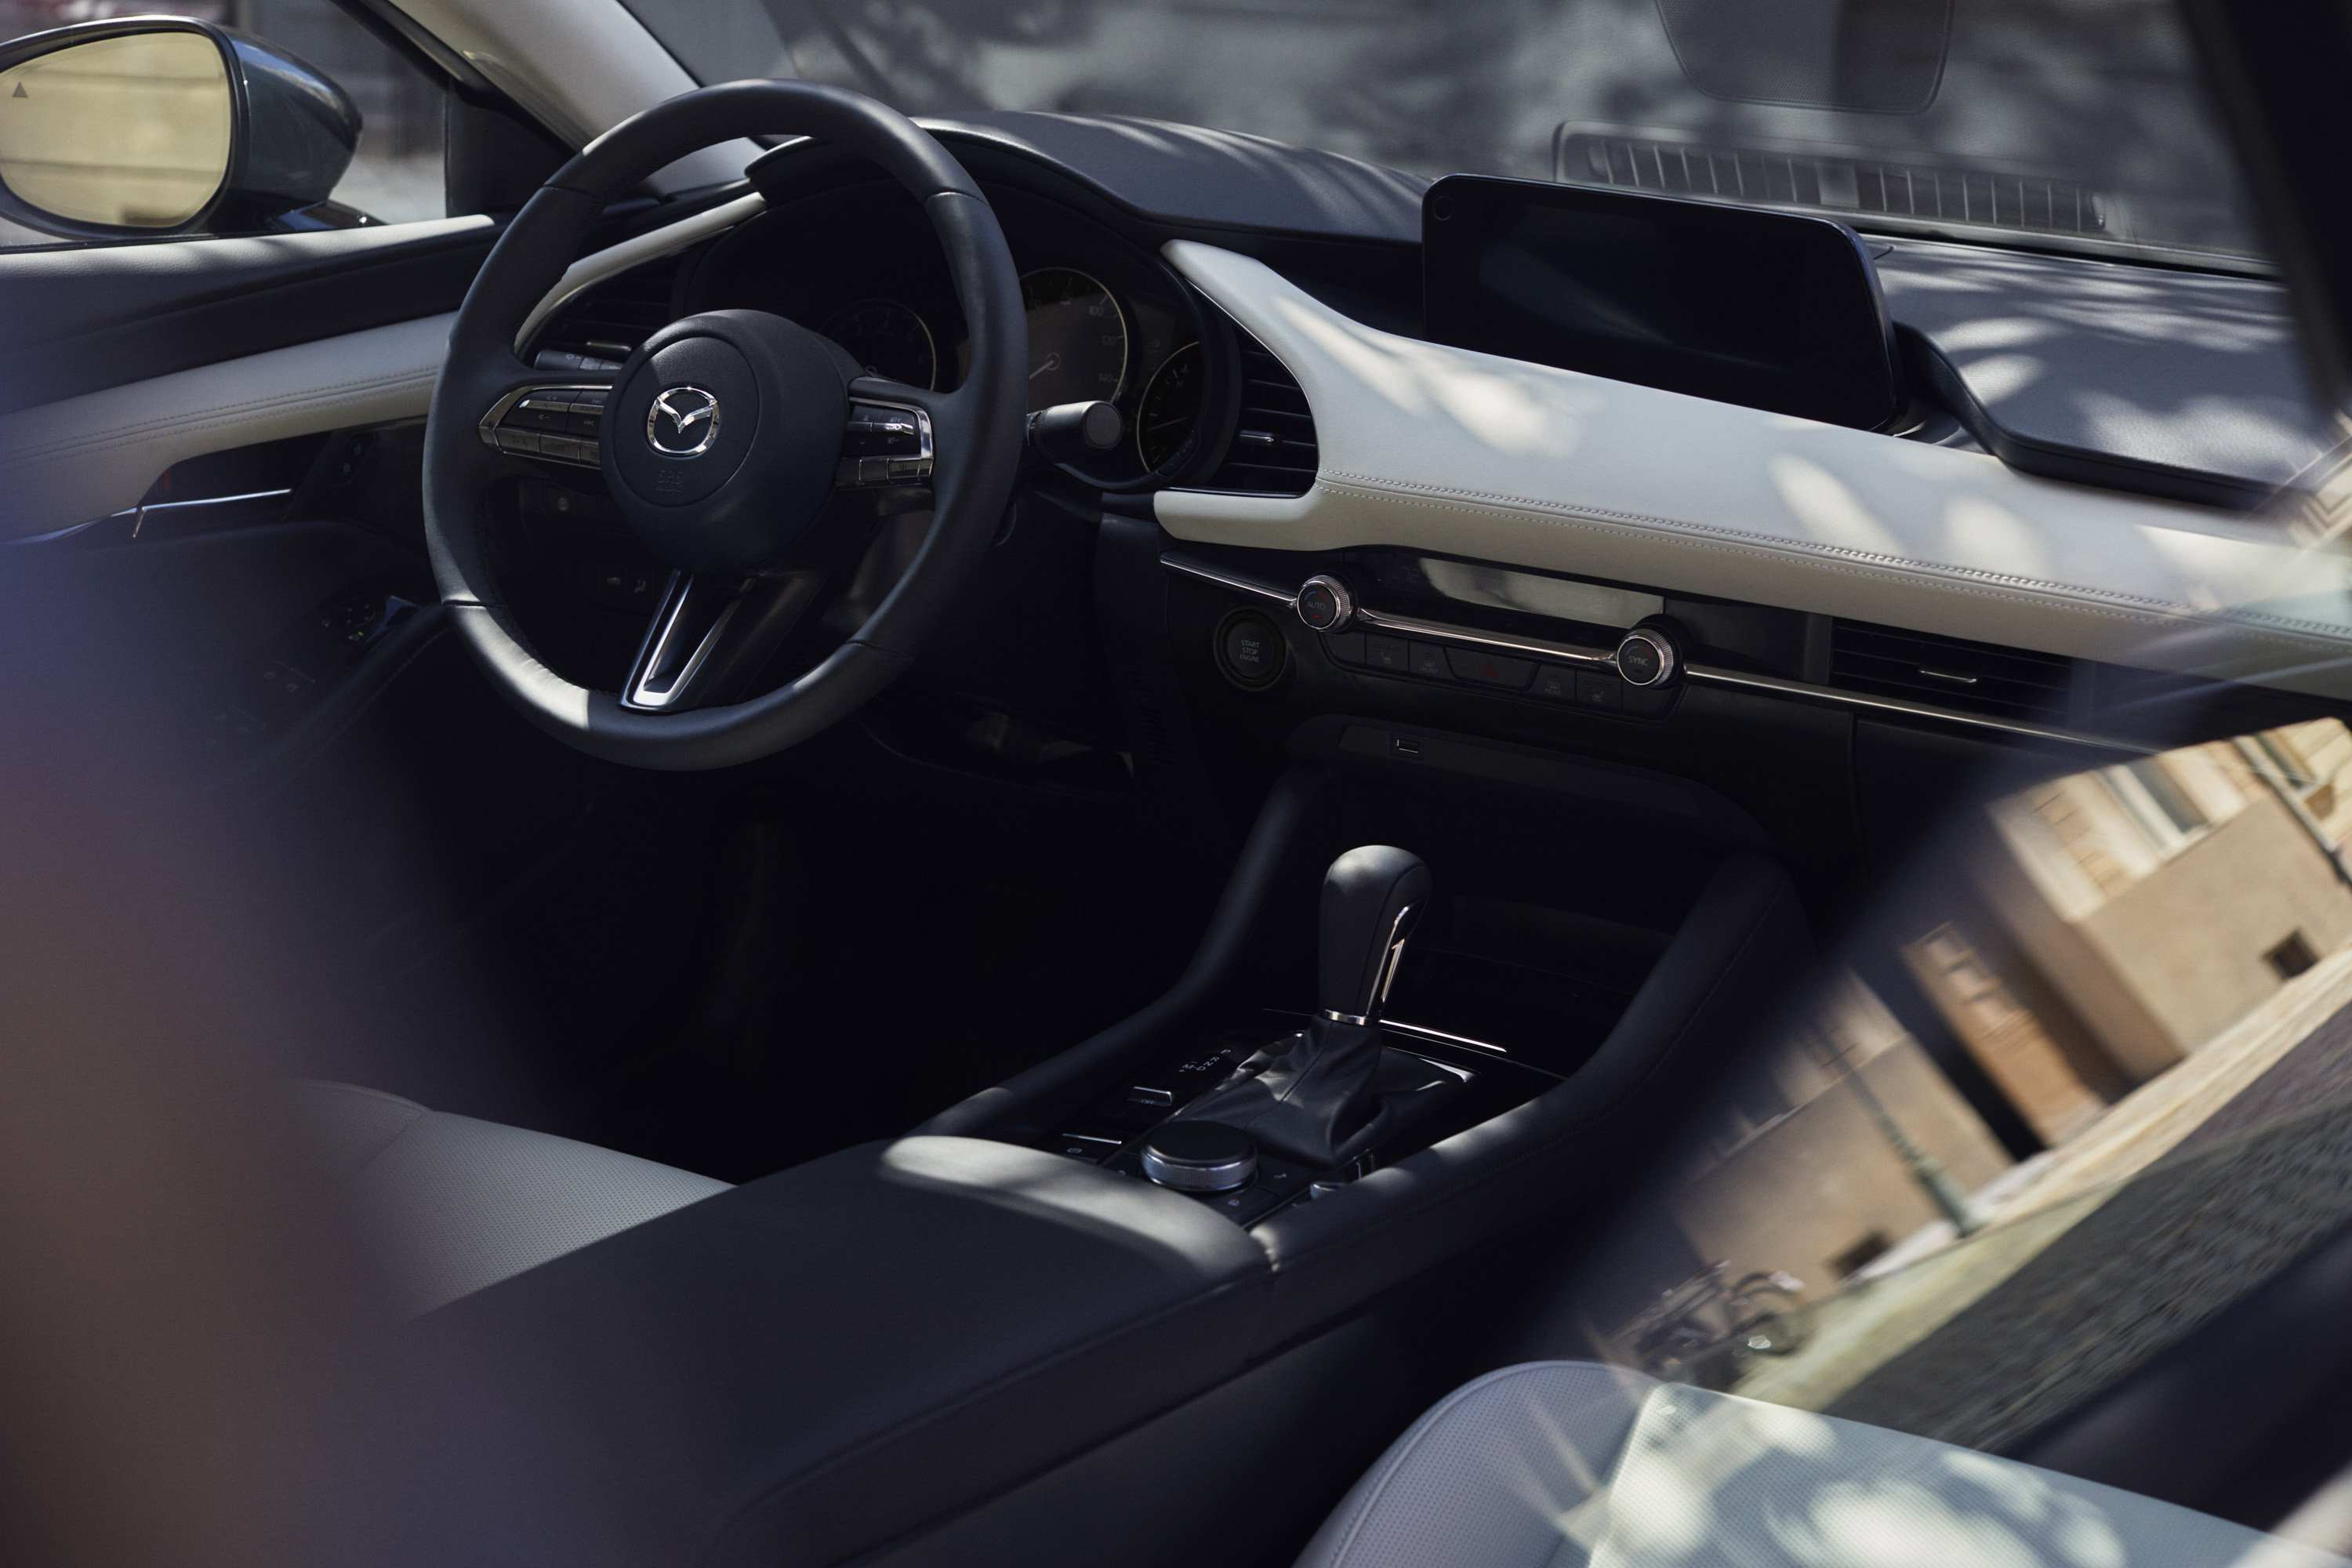 34 New The Mazda 2019 Engine New Interior Wallpaper by The Mazda 2019 Engine New Interior